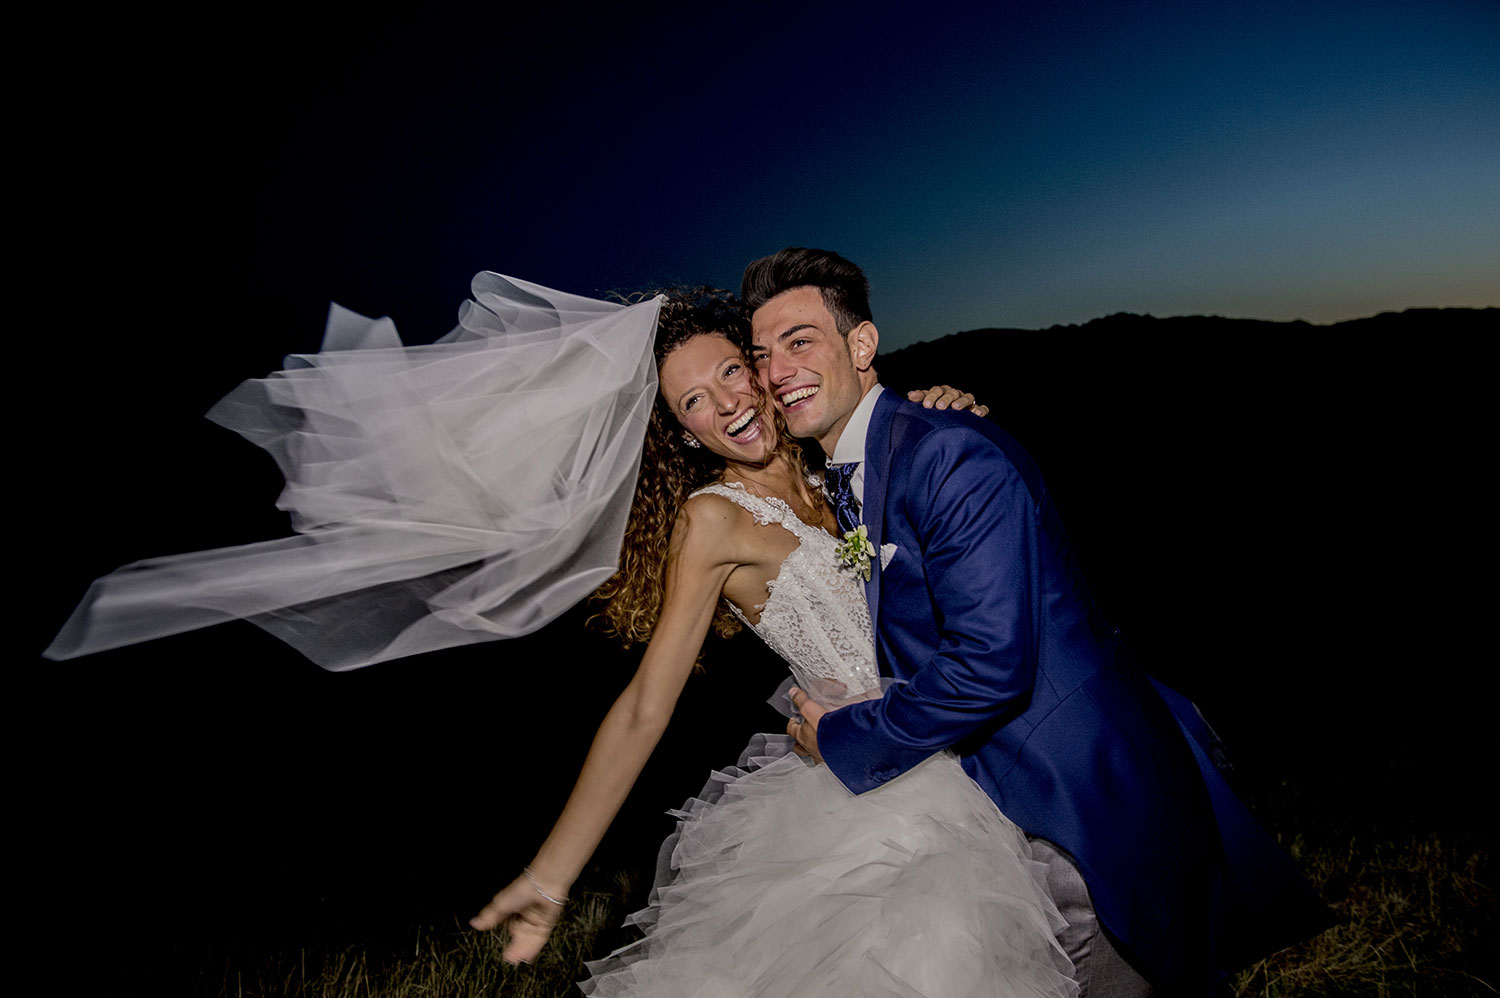 ivano-di-maria-photographer-wedding-erika-federico-14